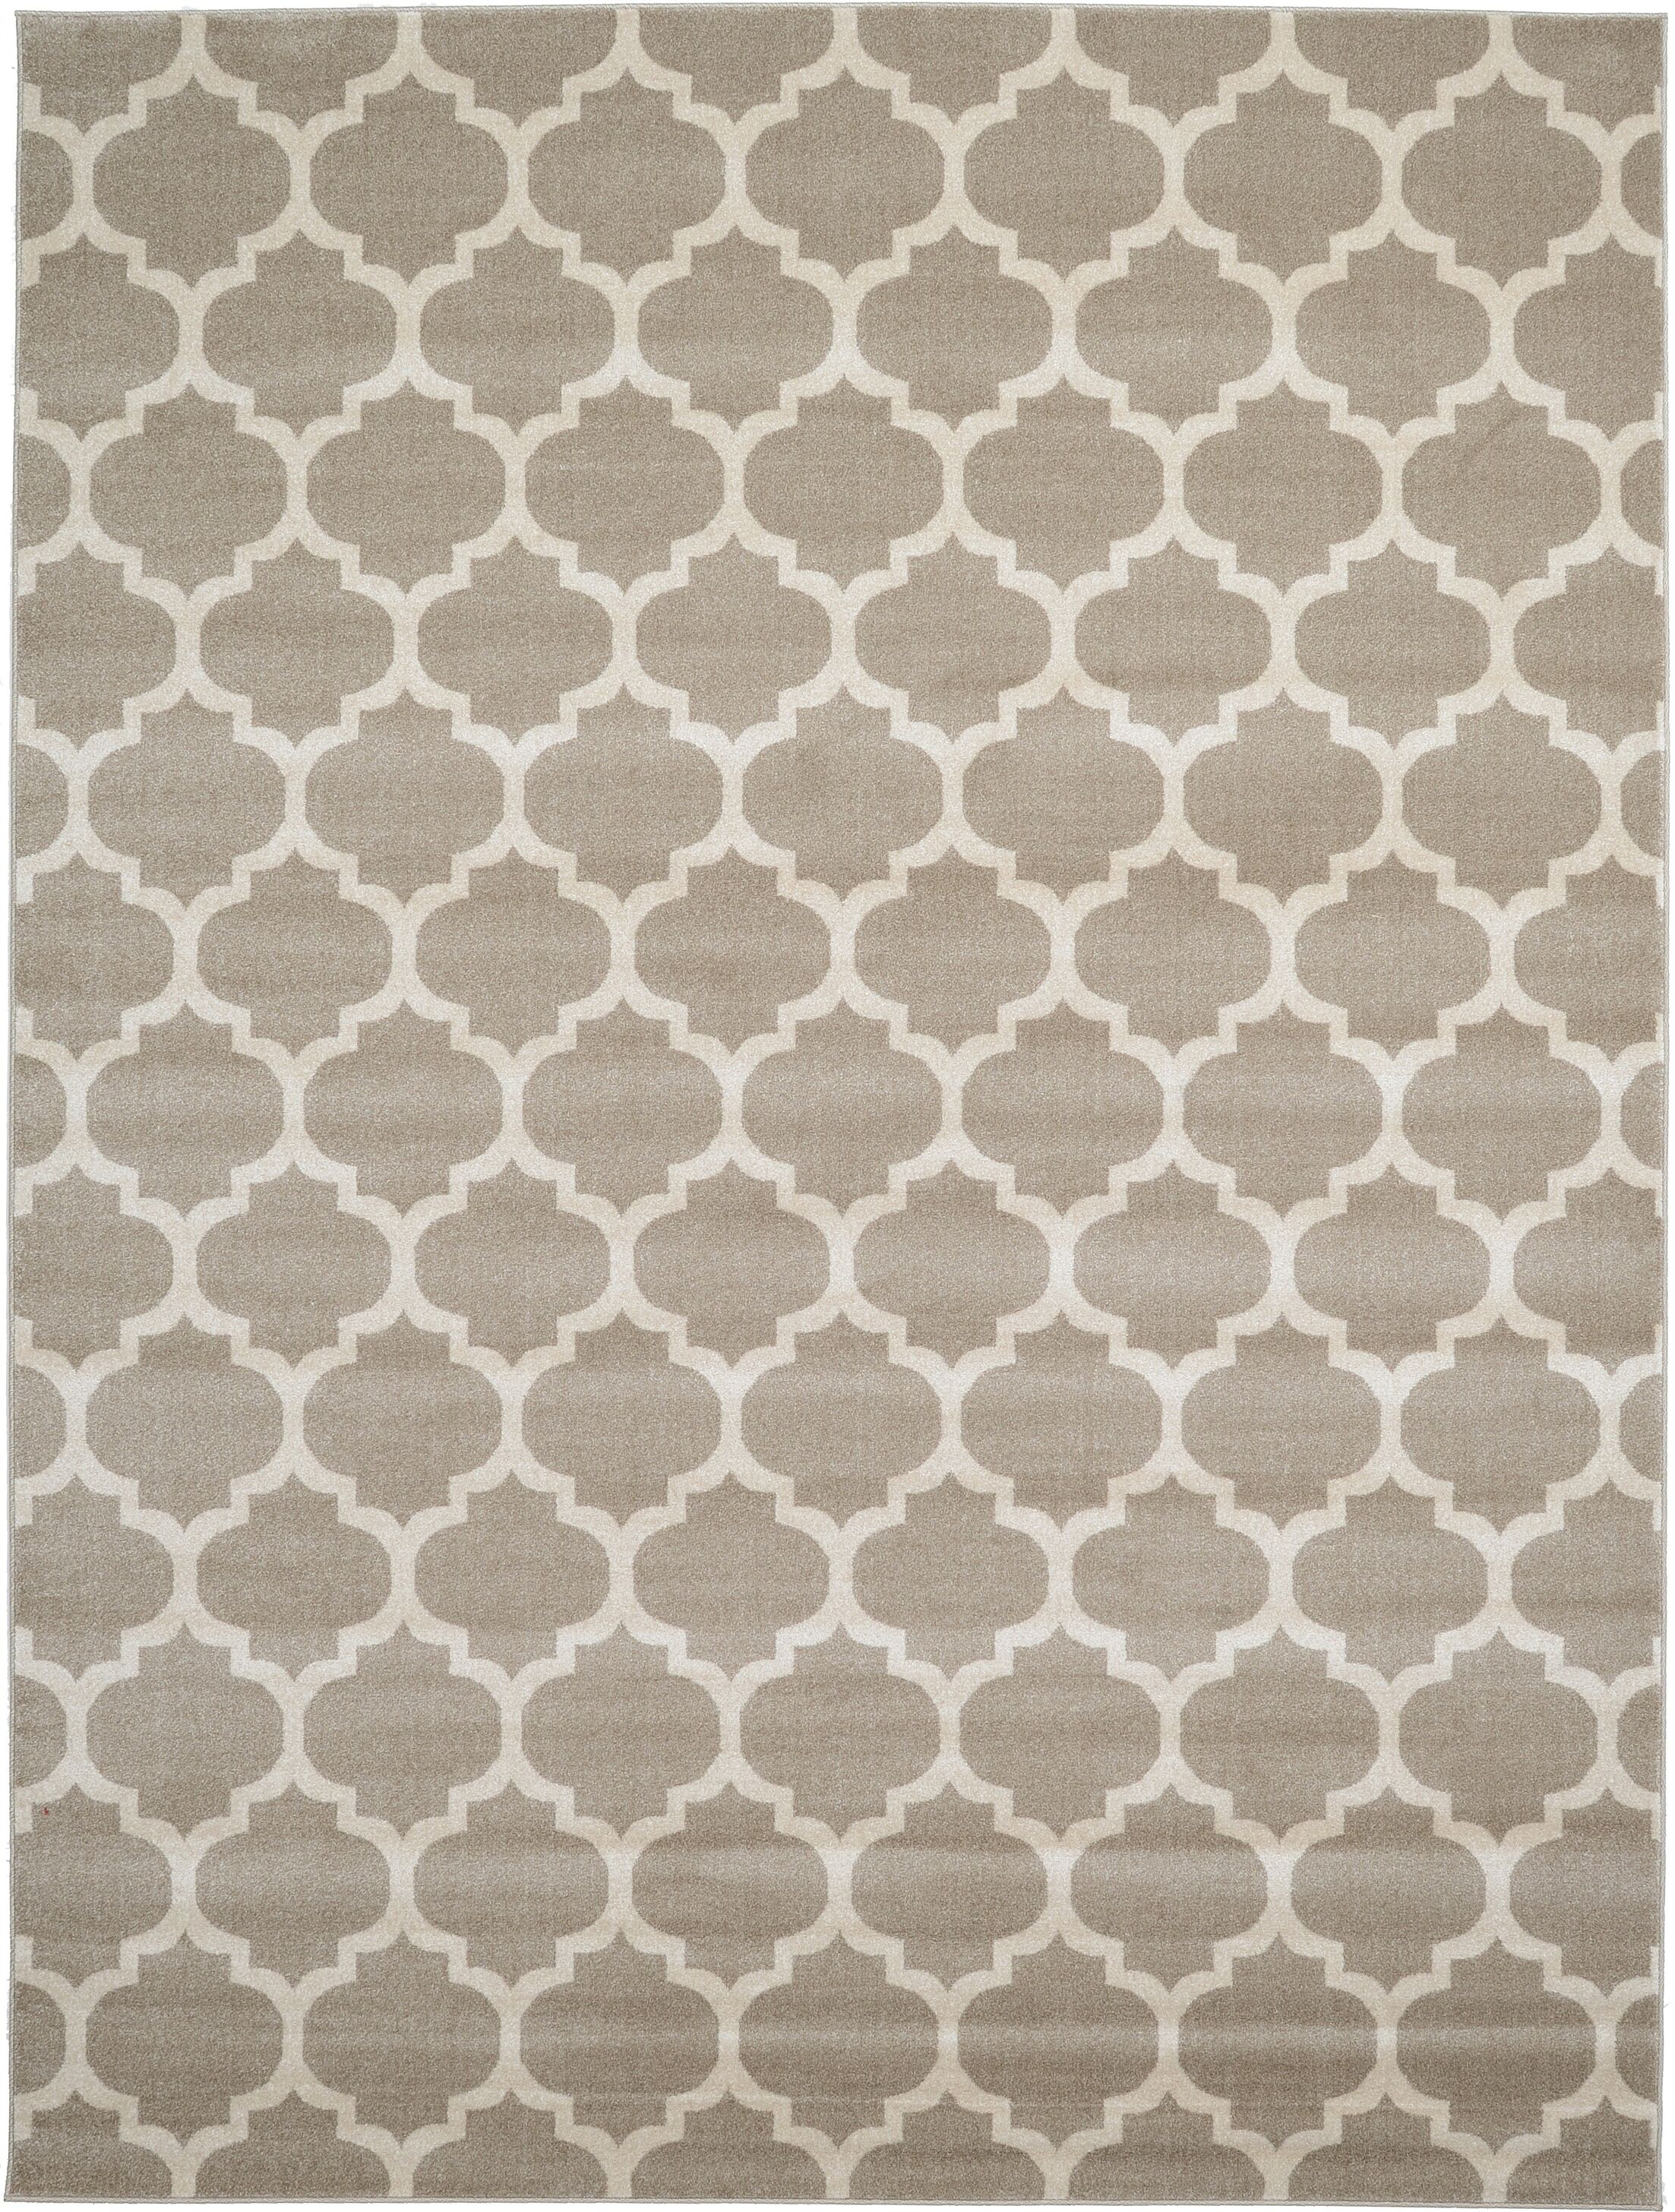 Moore Tan Area Rug Rug Size: Rectangle 9' x 12'